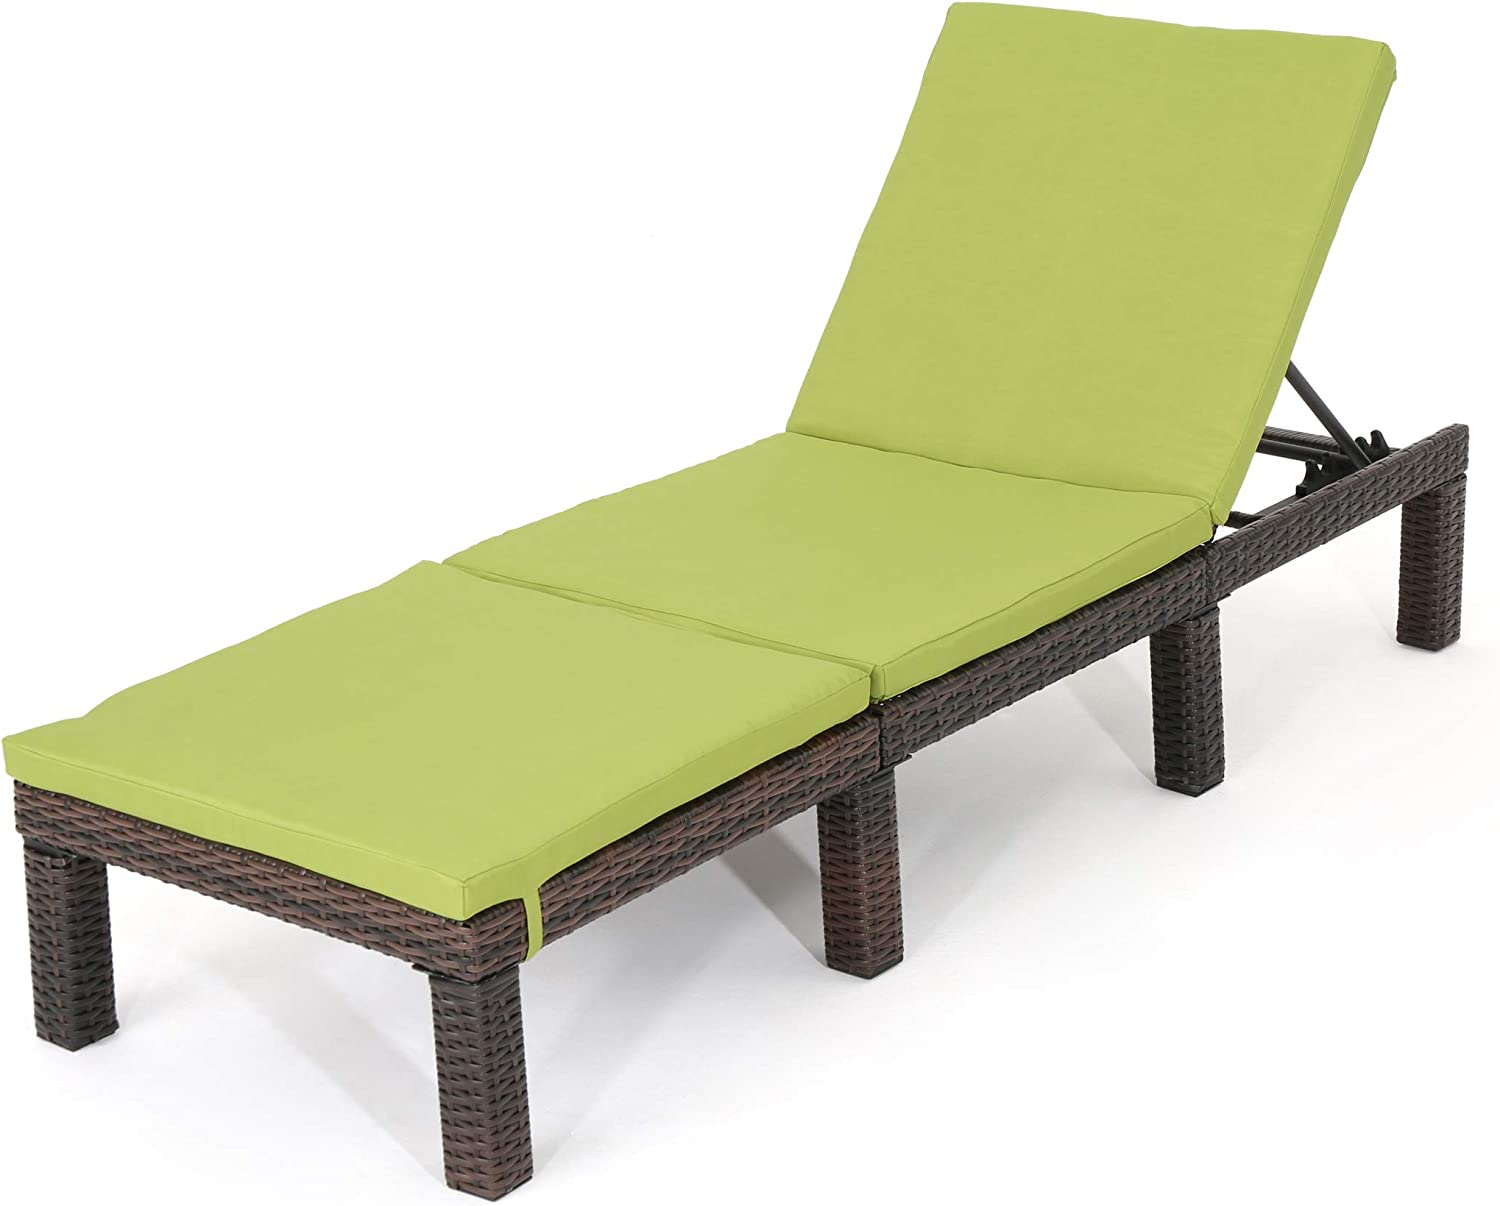 Christopher Knight Home Outlet SALE Jamaica Max 47% OFF Outdoor Chaise wit Lounge Wicker